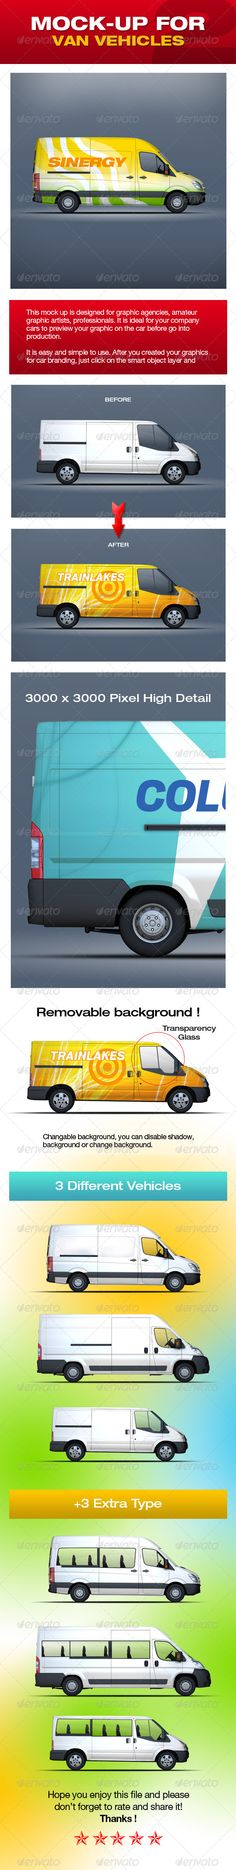 Mock-Up For Van Vehicles V2  #GraphicRiver         This mock up is designed for graphic agencies, amateur graphic artists, professionals. It is ideal for your company cars to preview your graphic on the vehicle before go into production.  	 It is easy and simple to use. After you created your graphics for vehicle branding, just click on the smart object layer and replace the current image with your work to preview how it looks on the vehicle.  	 Changable background, you can disable shadow…